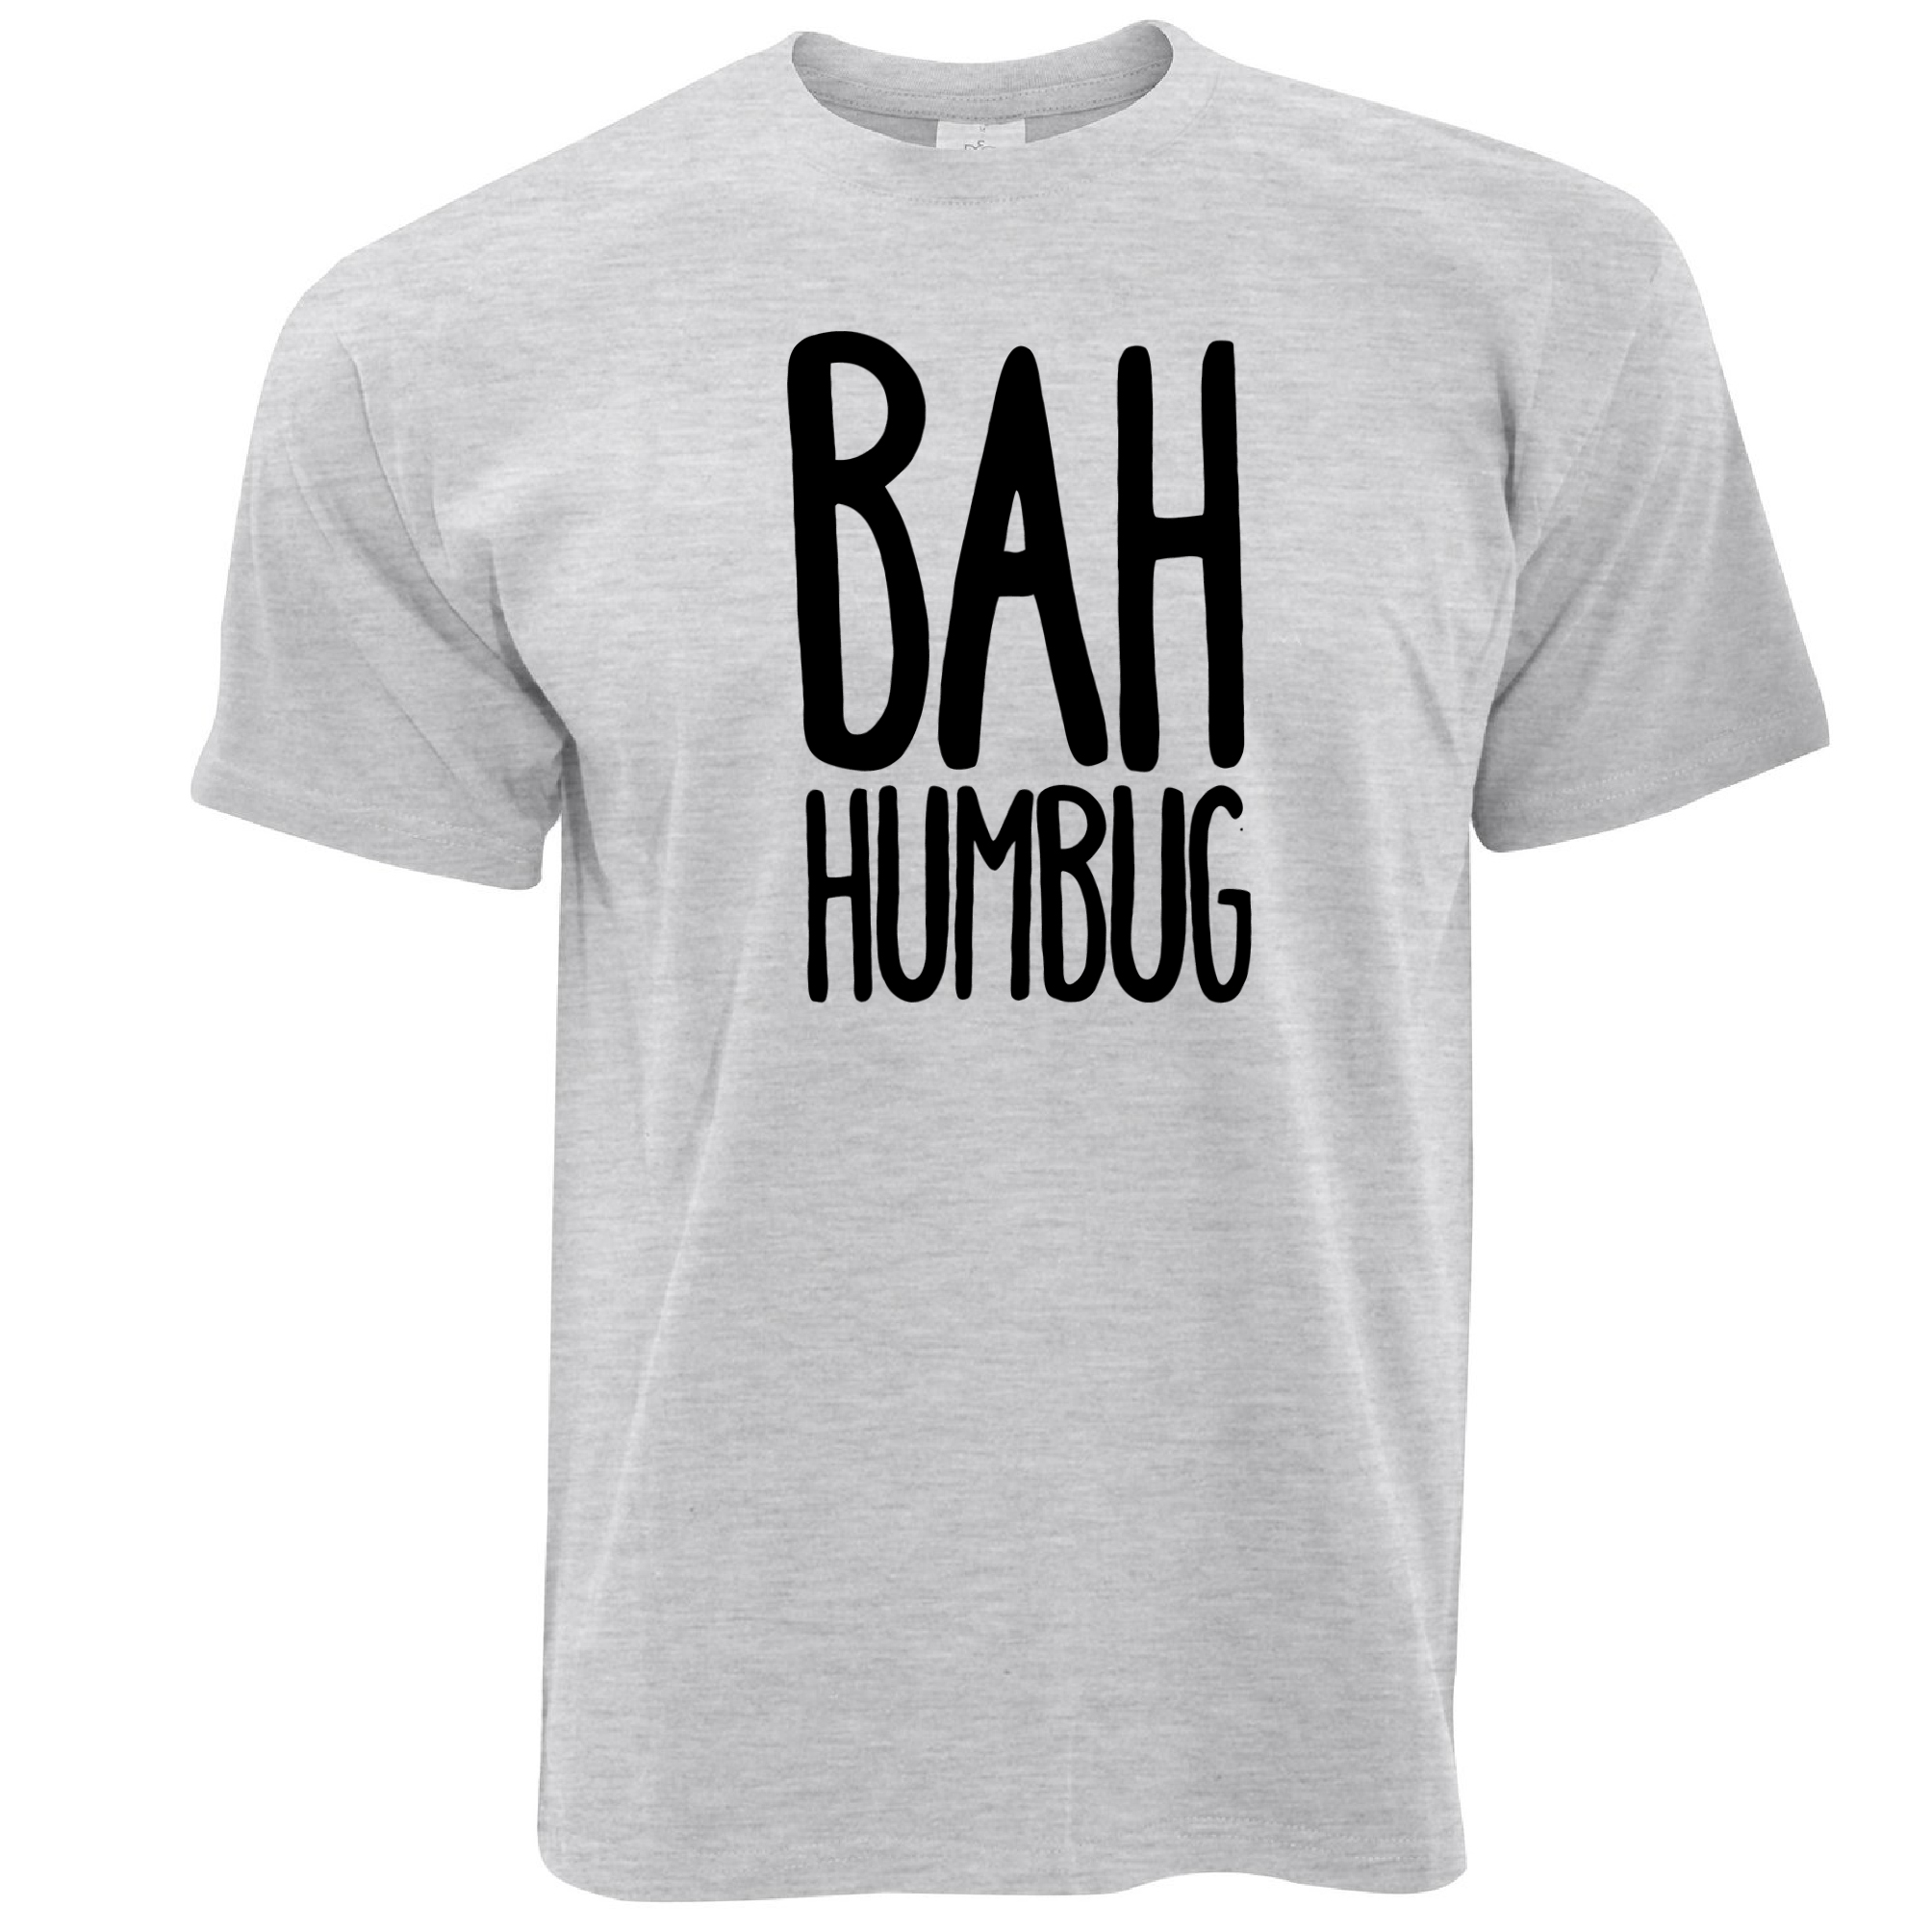 Cool T Shirts Designs Best Selling Casual Bah Bah .